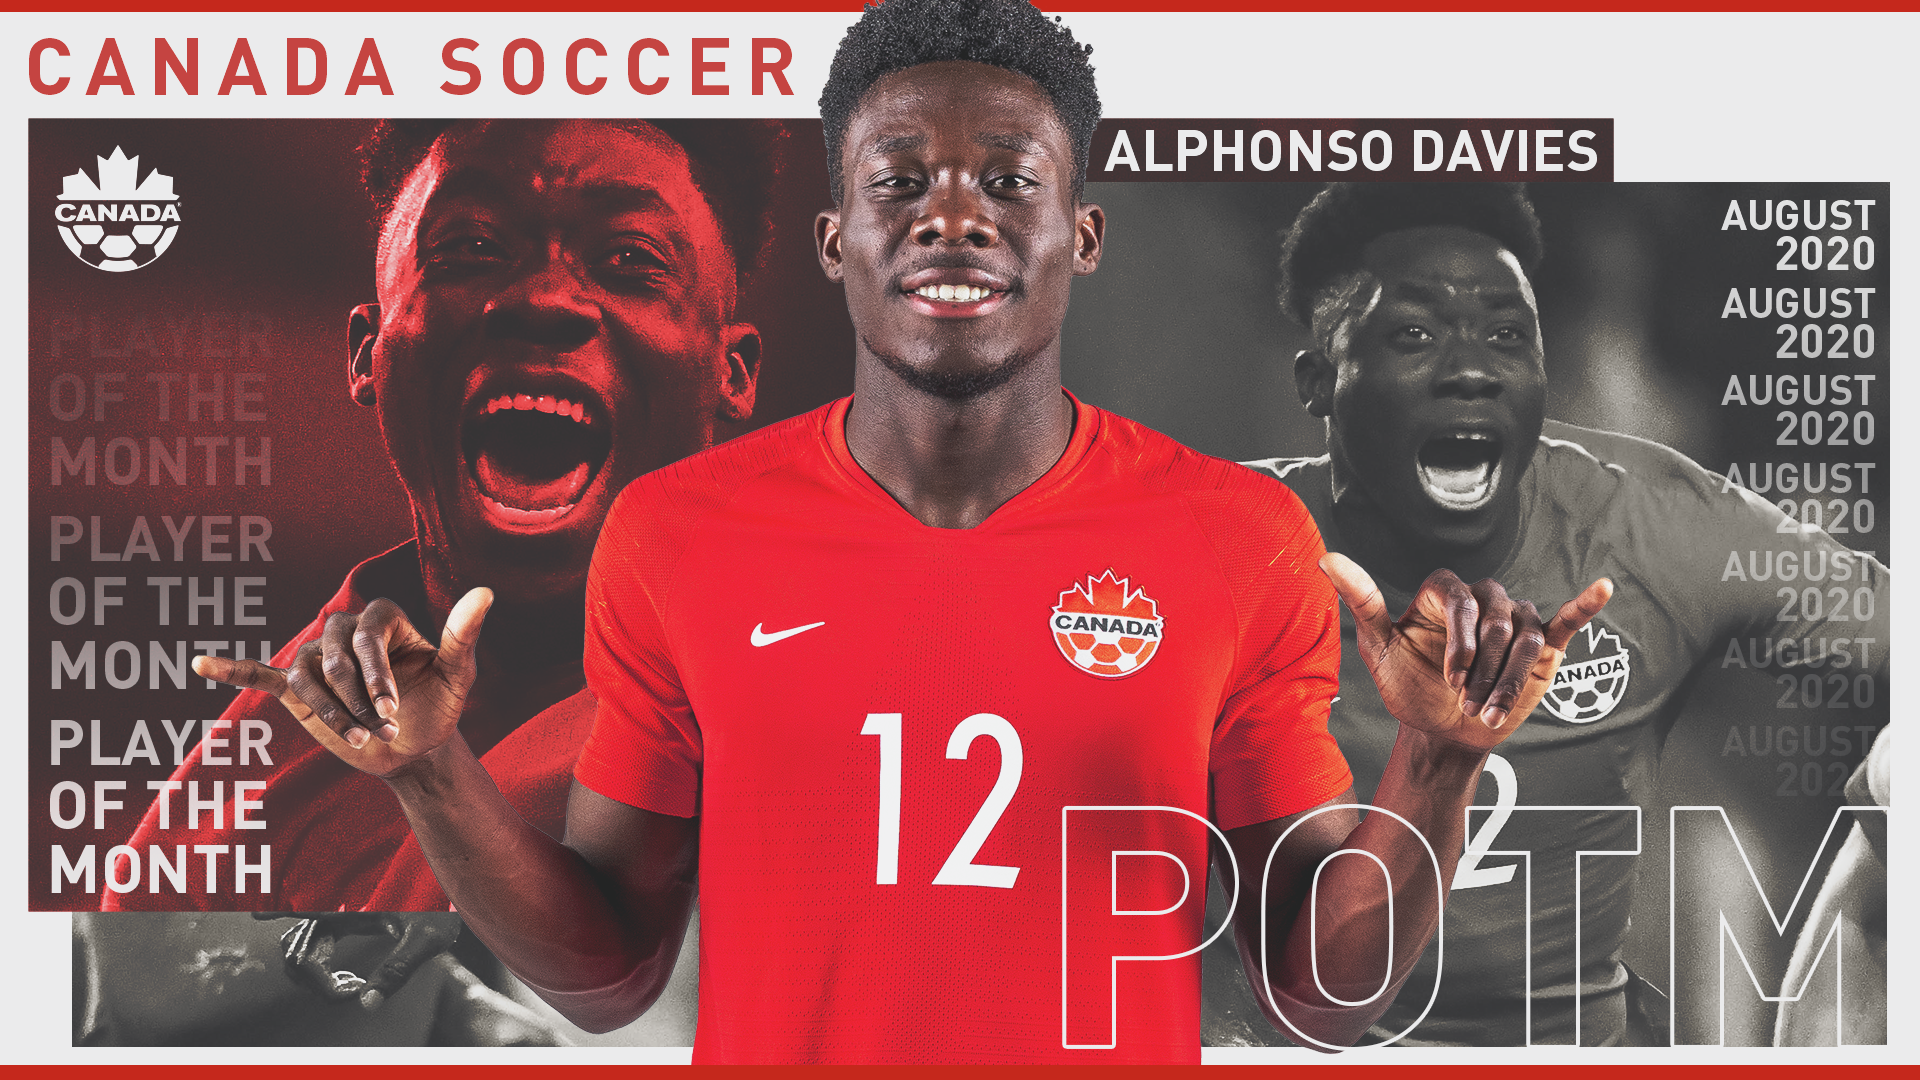 Alphonso Davies, player of the month